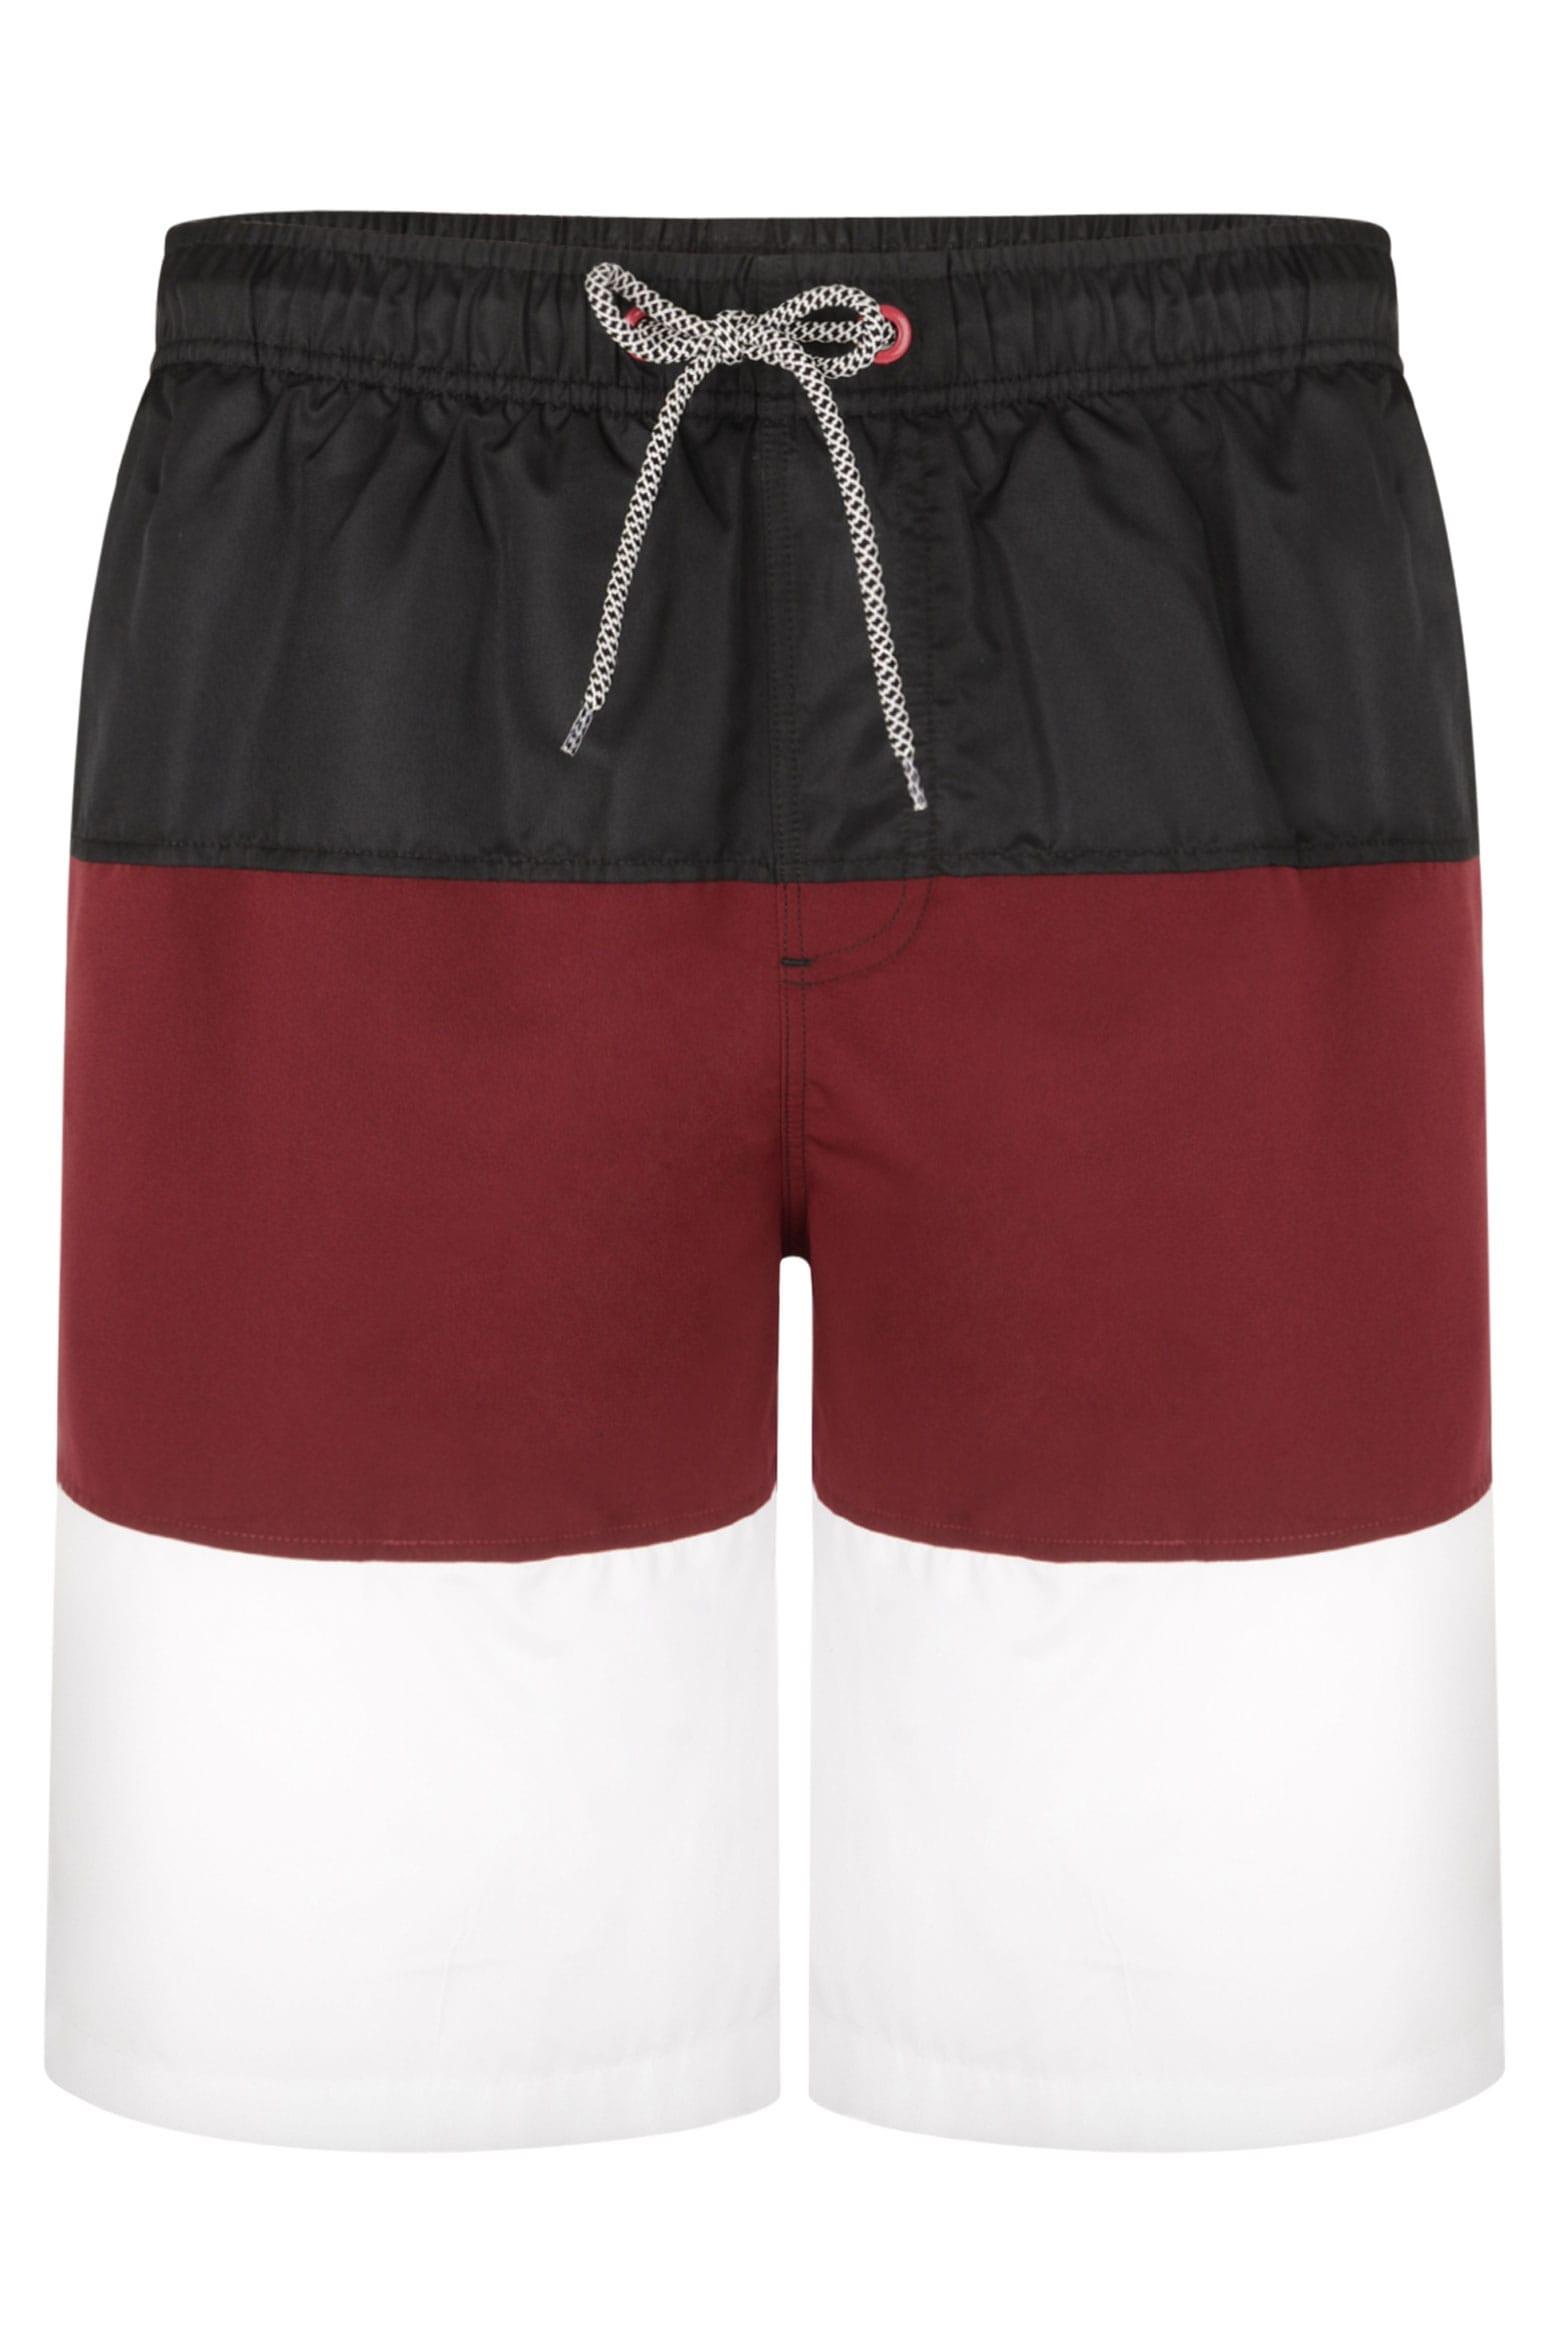 KAM Black Colour Block Swim Shorts